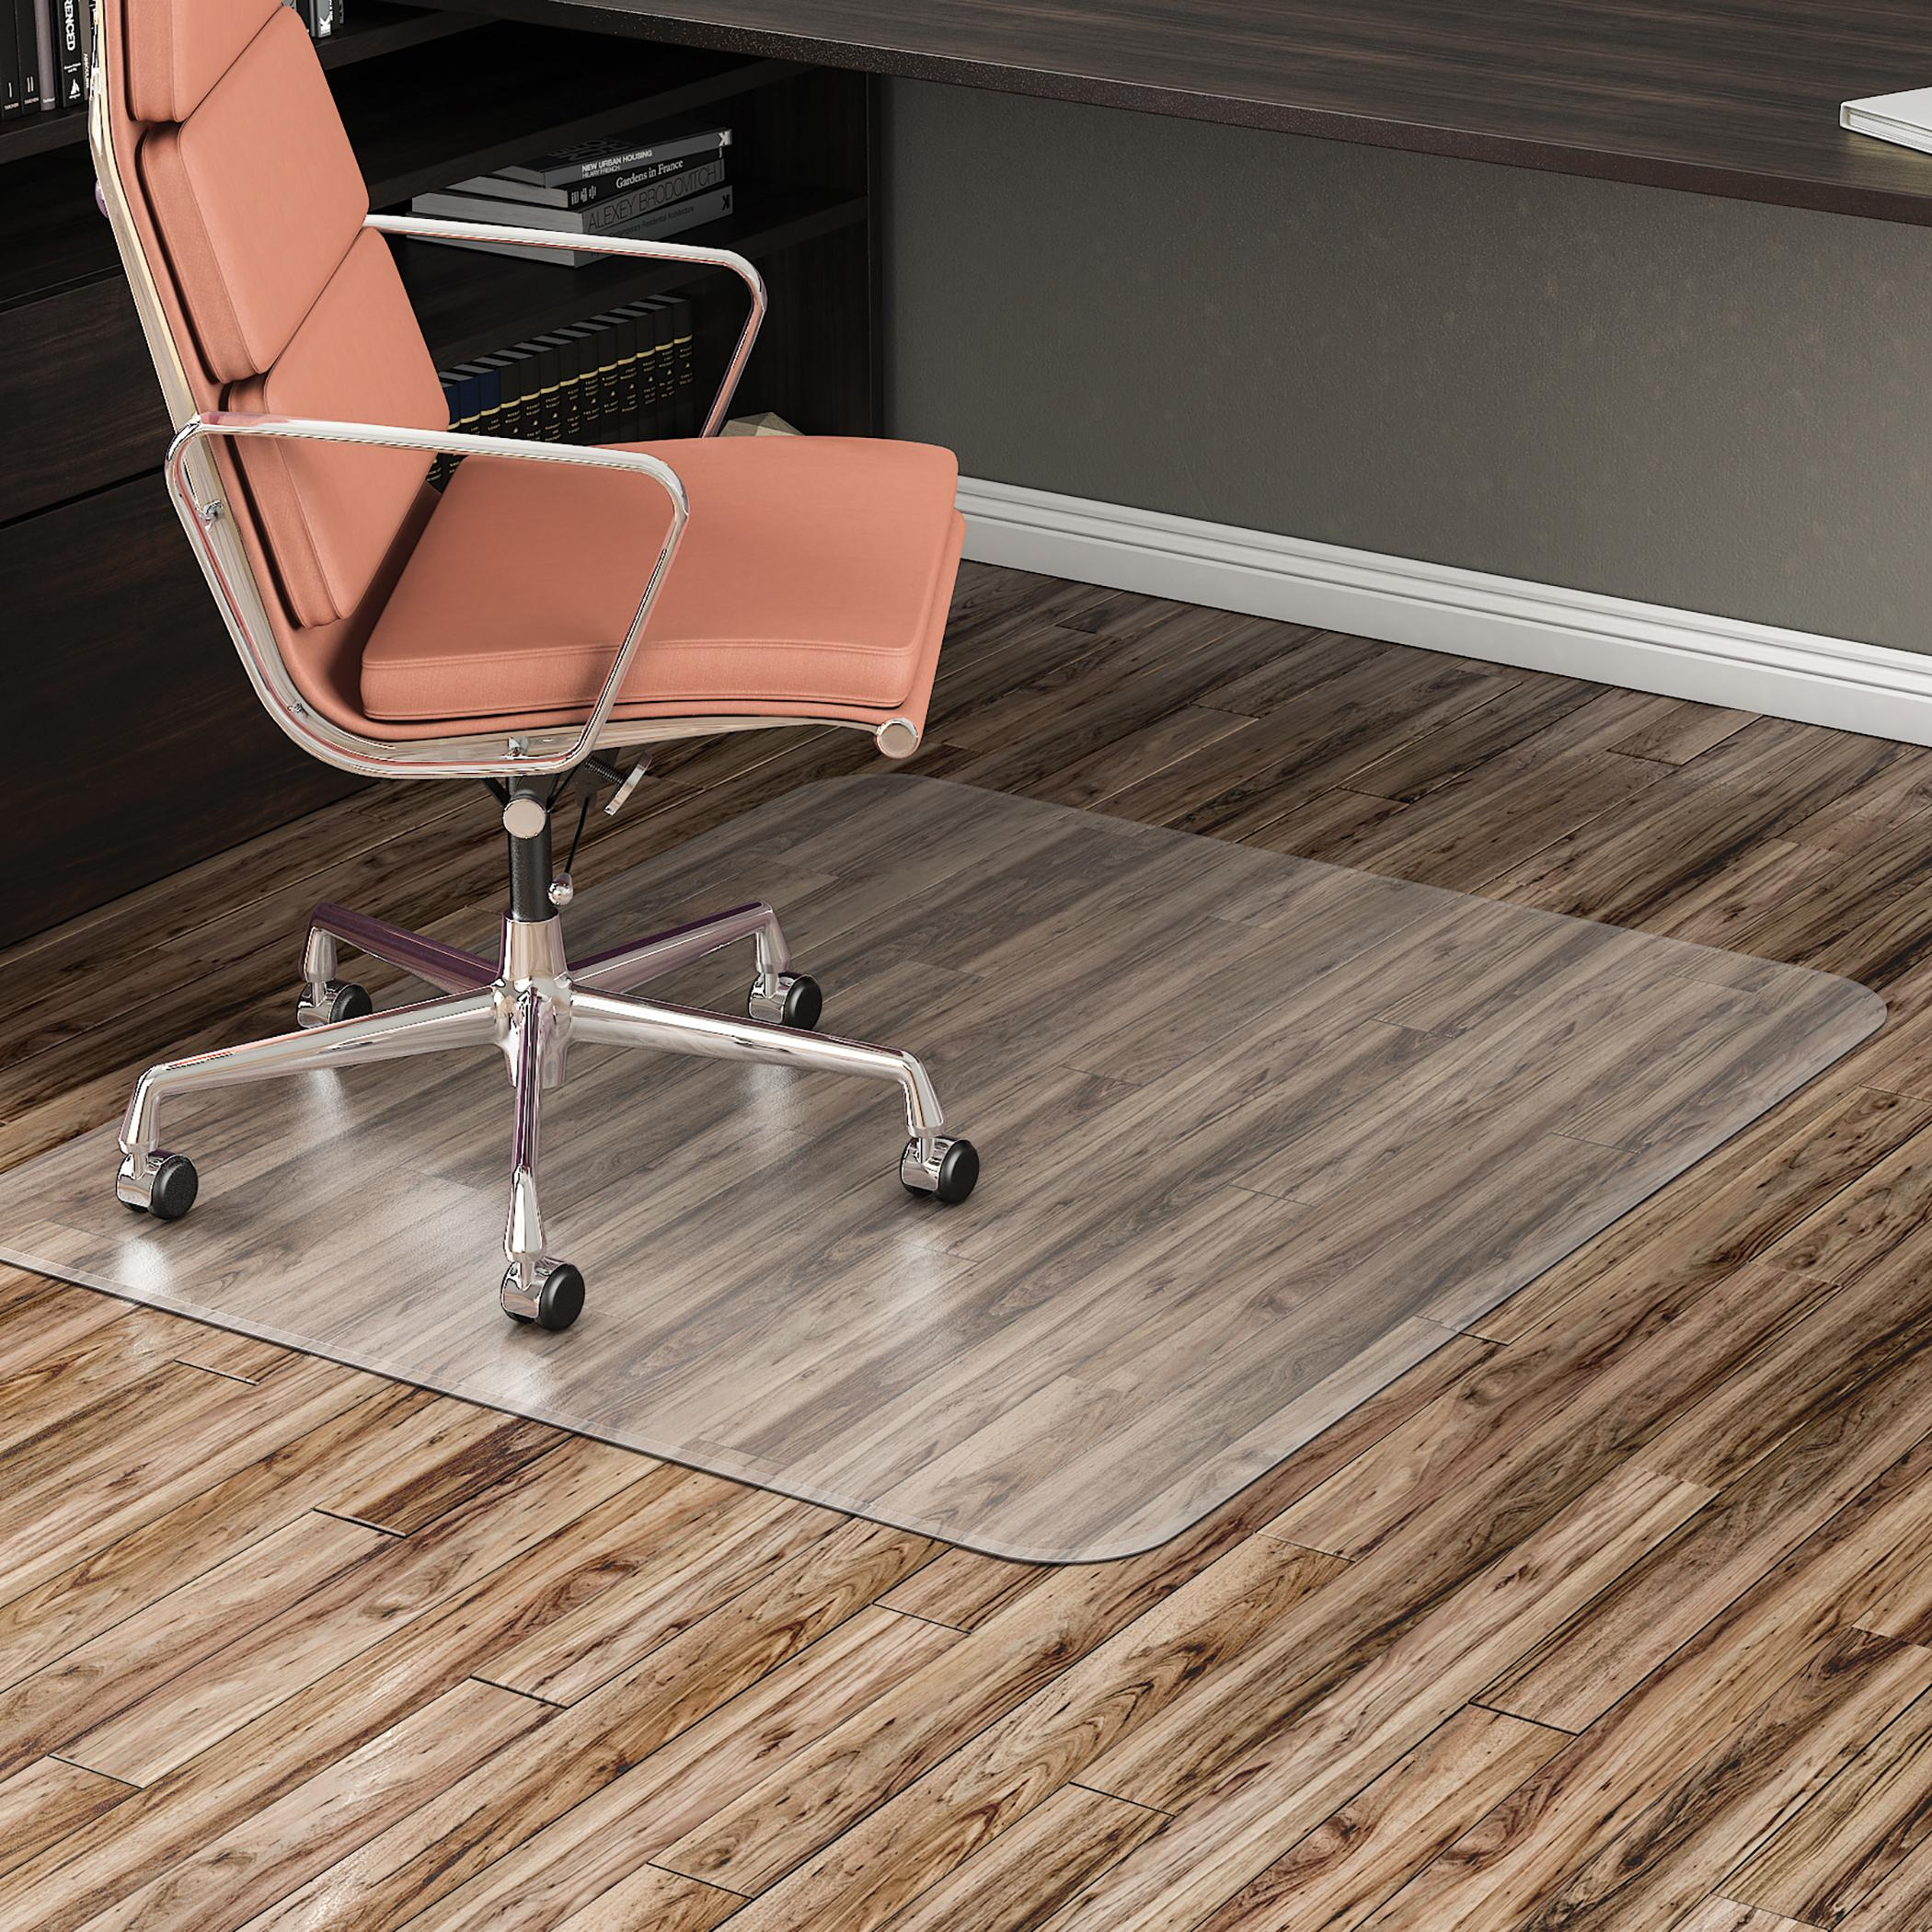 Deflecto EconoMat Clear Chair Mat Hard Floor Use Rectangle